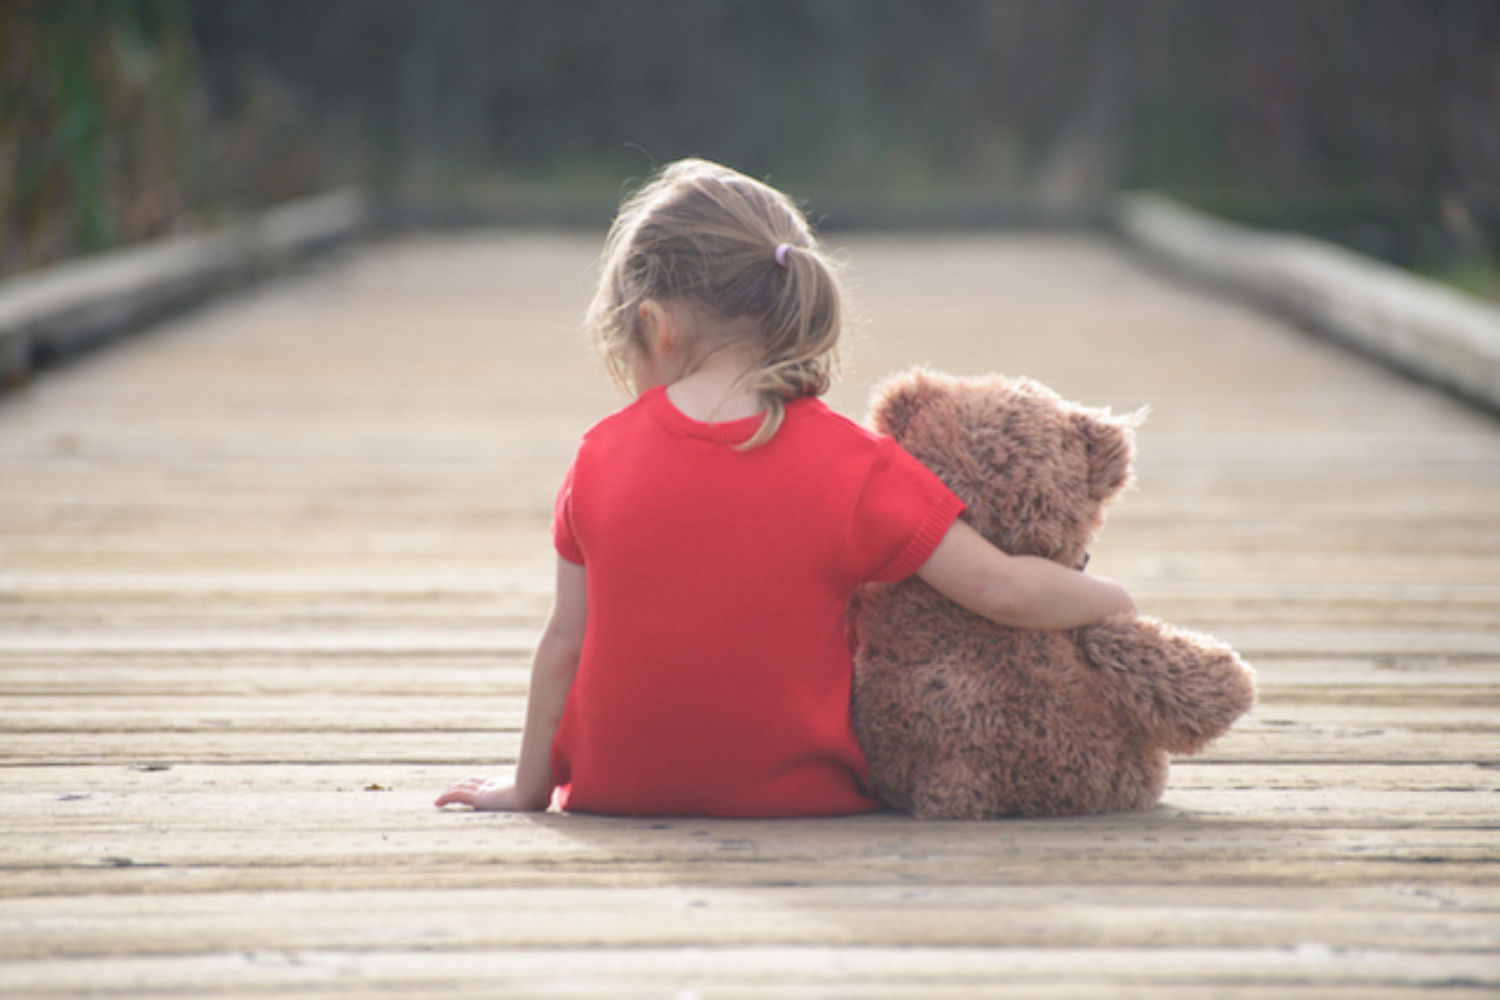 Children's Emotional Well-Being: Eight Practical Tips for Parents